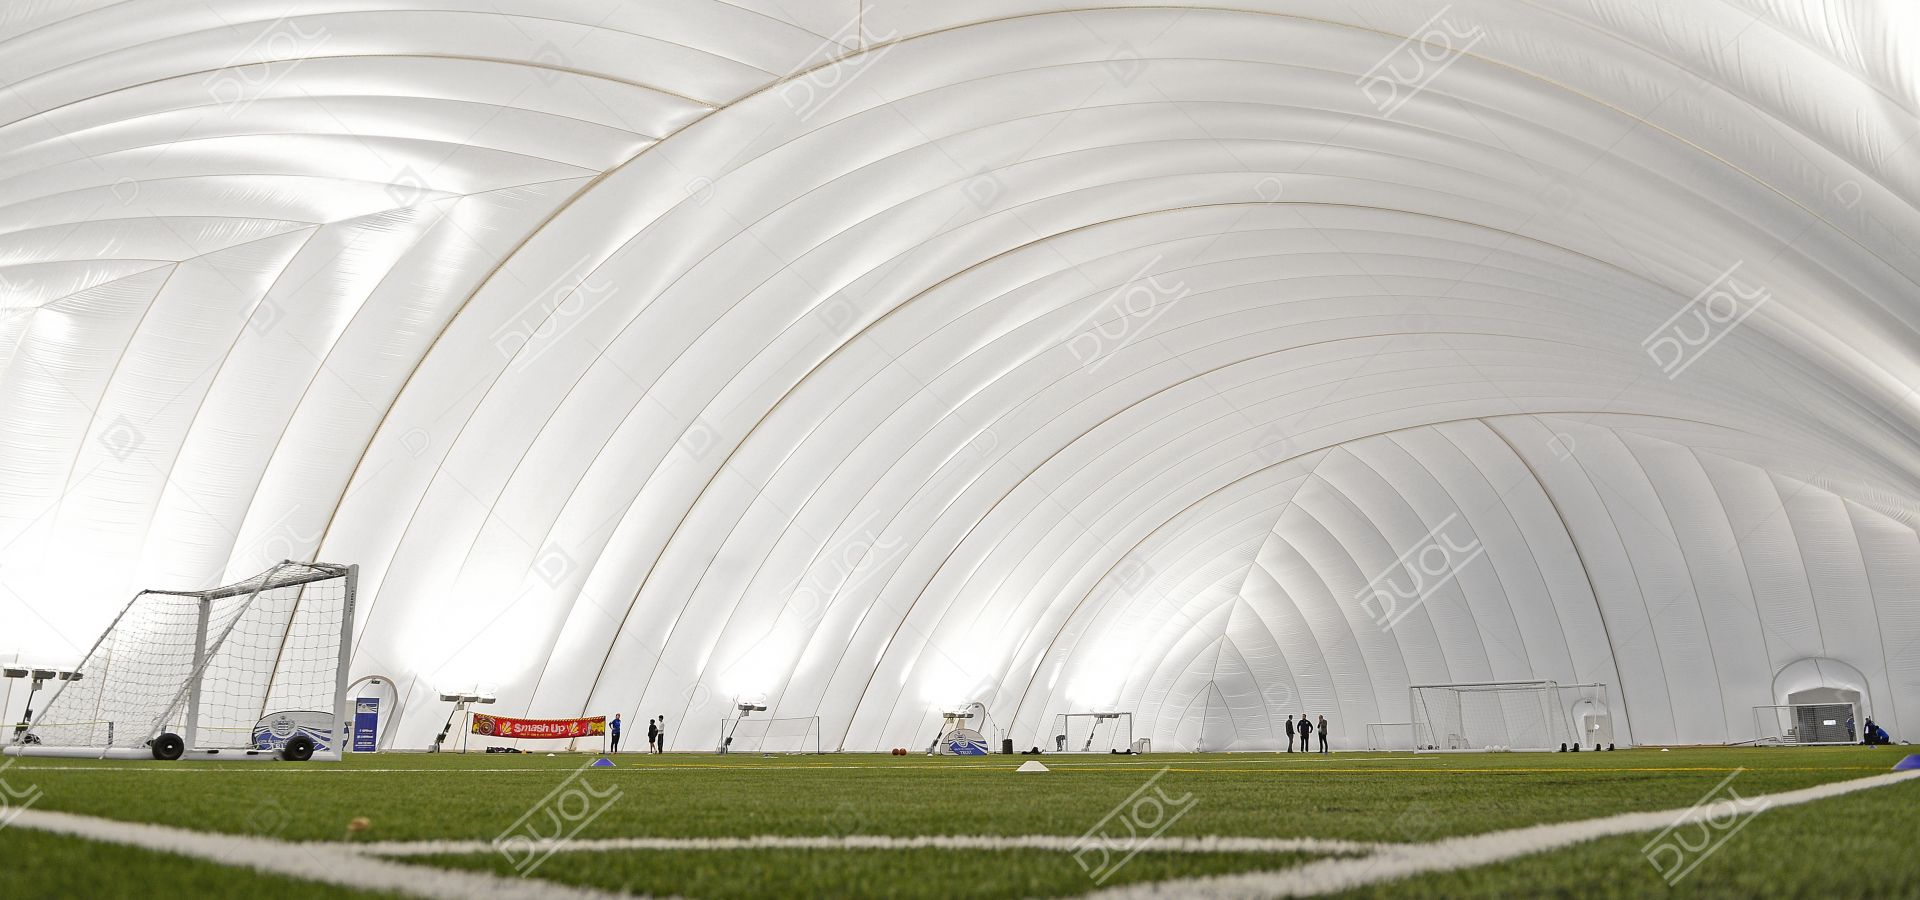 Football air domes